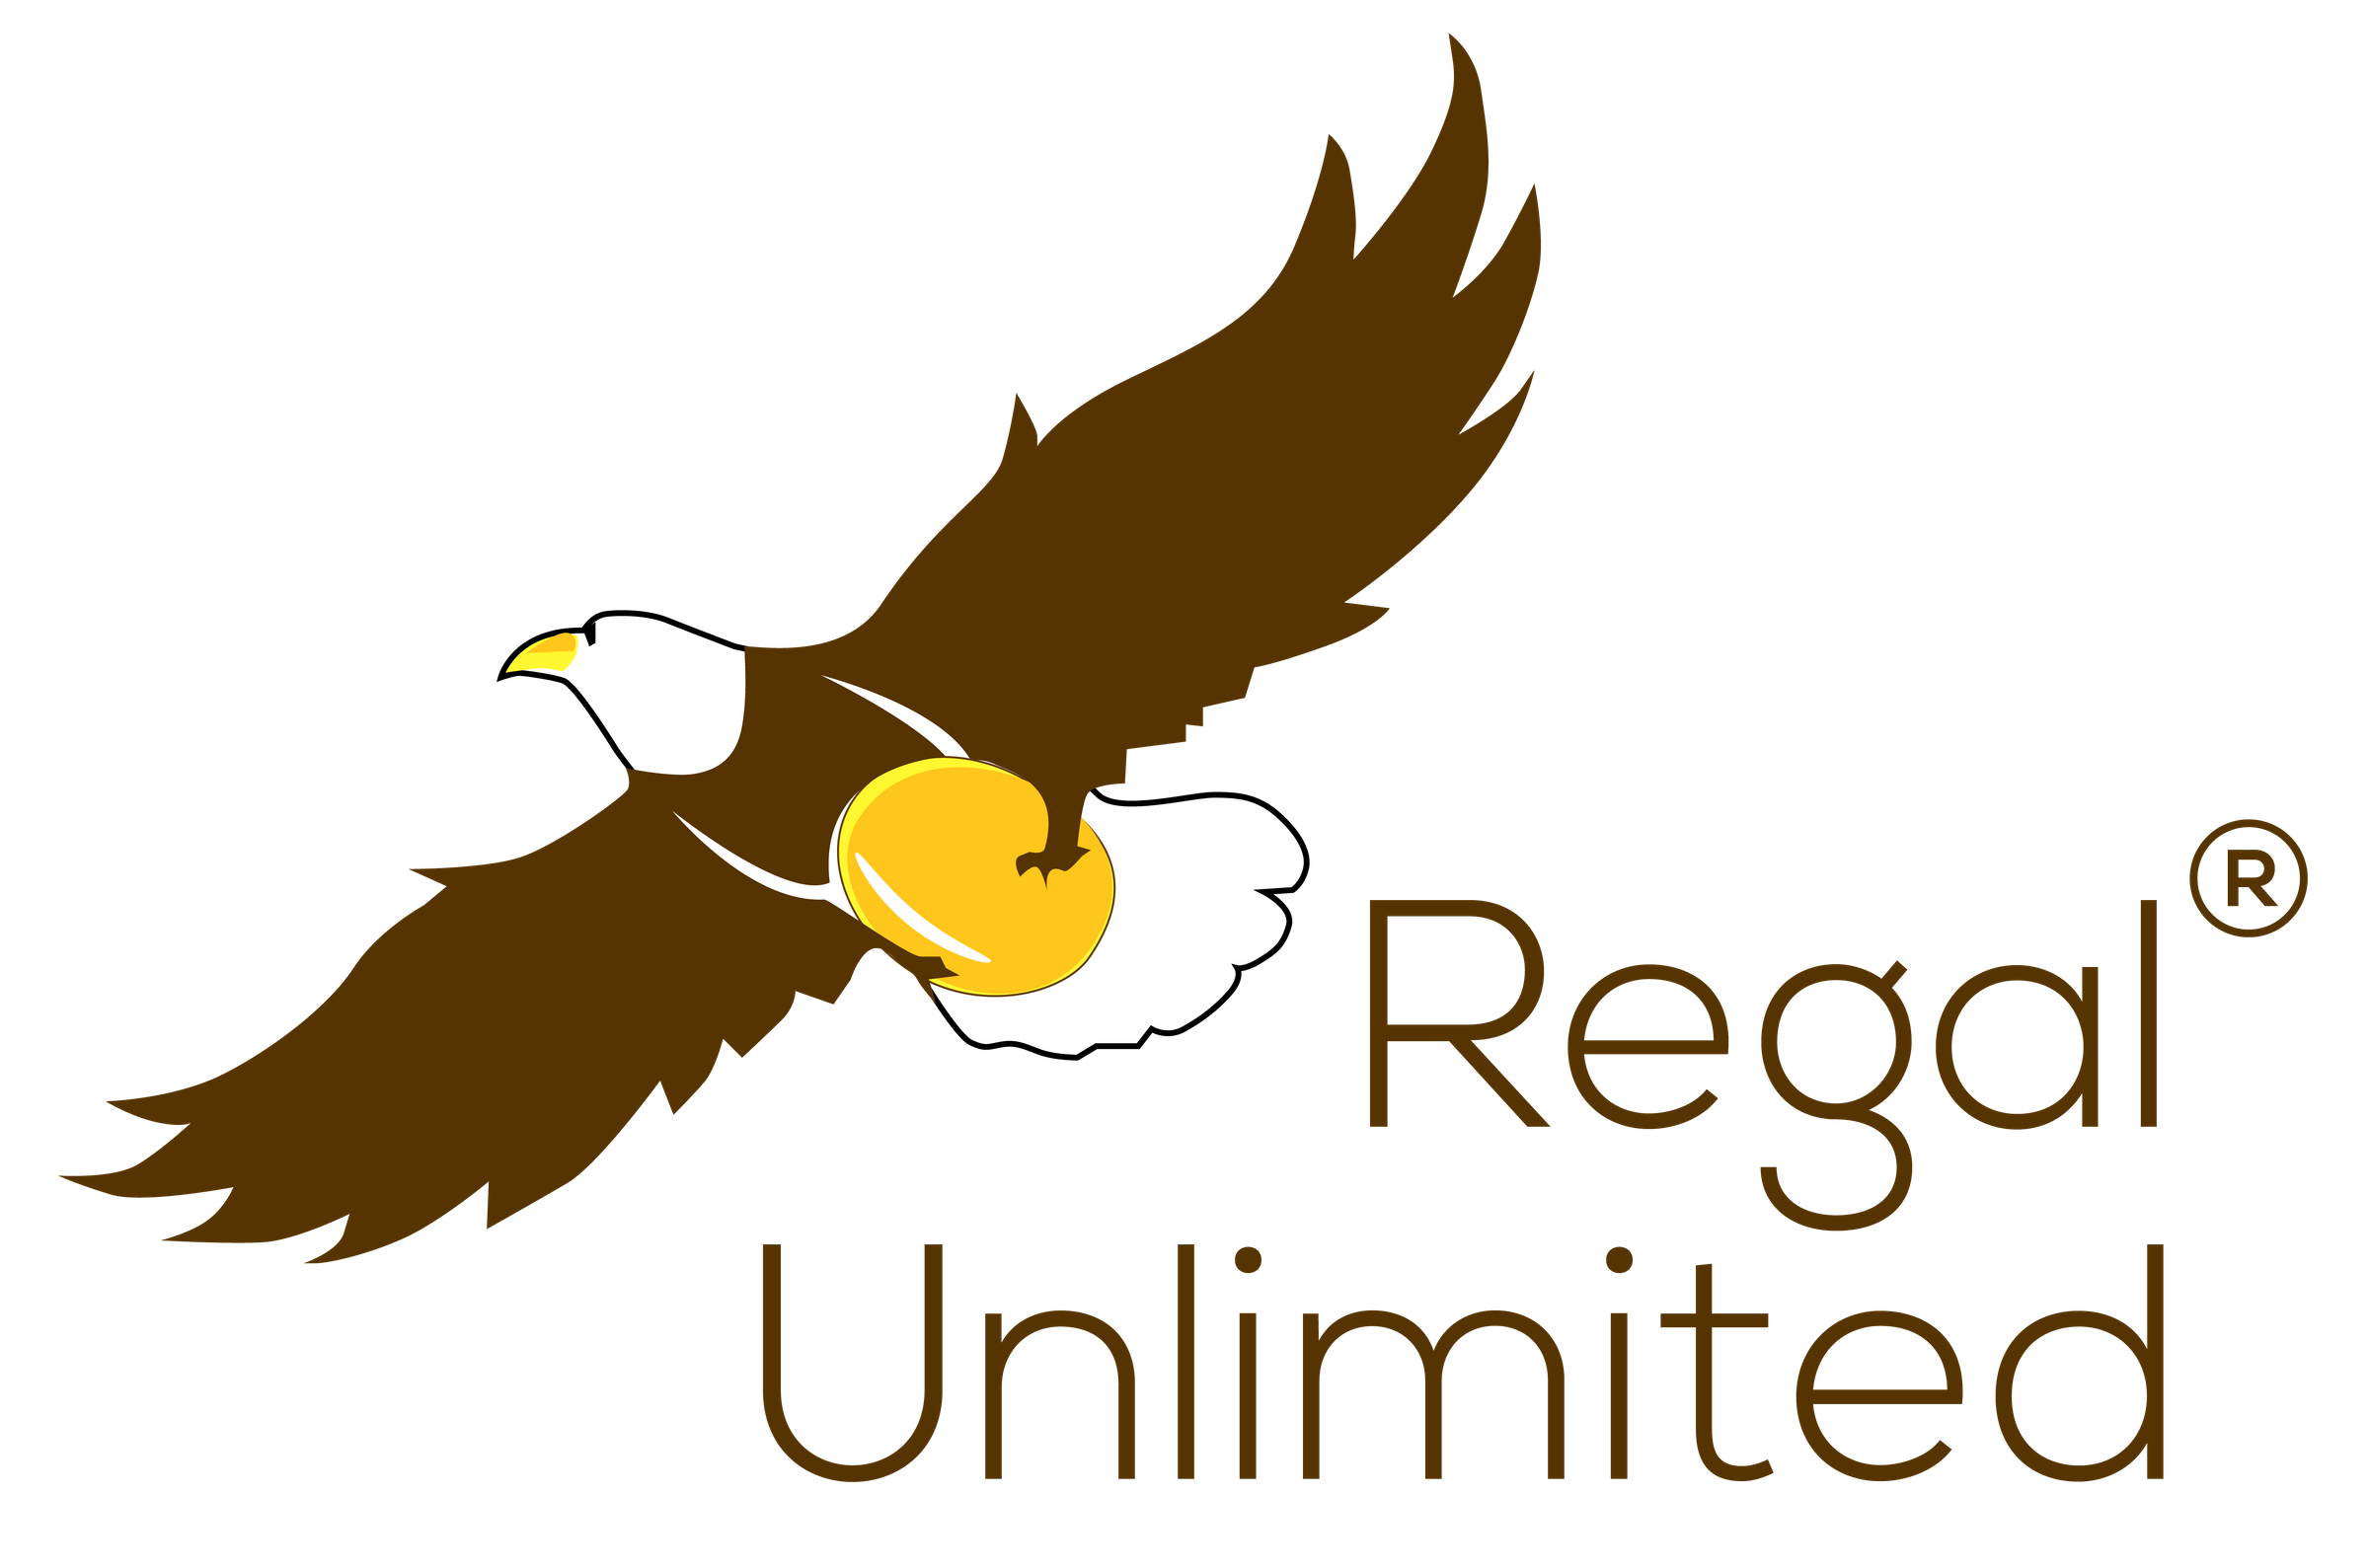 Regal Unlimited profile image